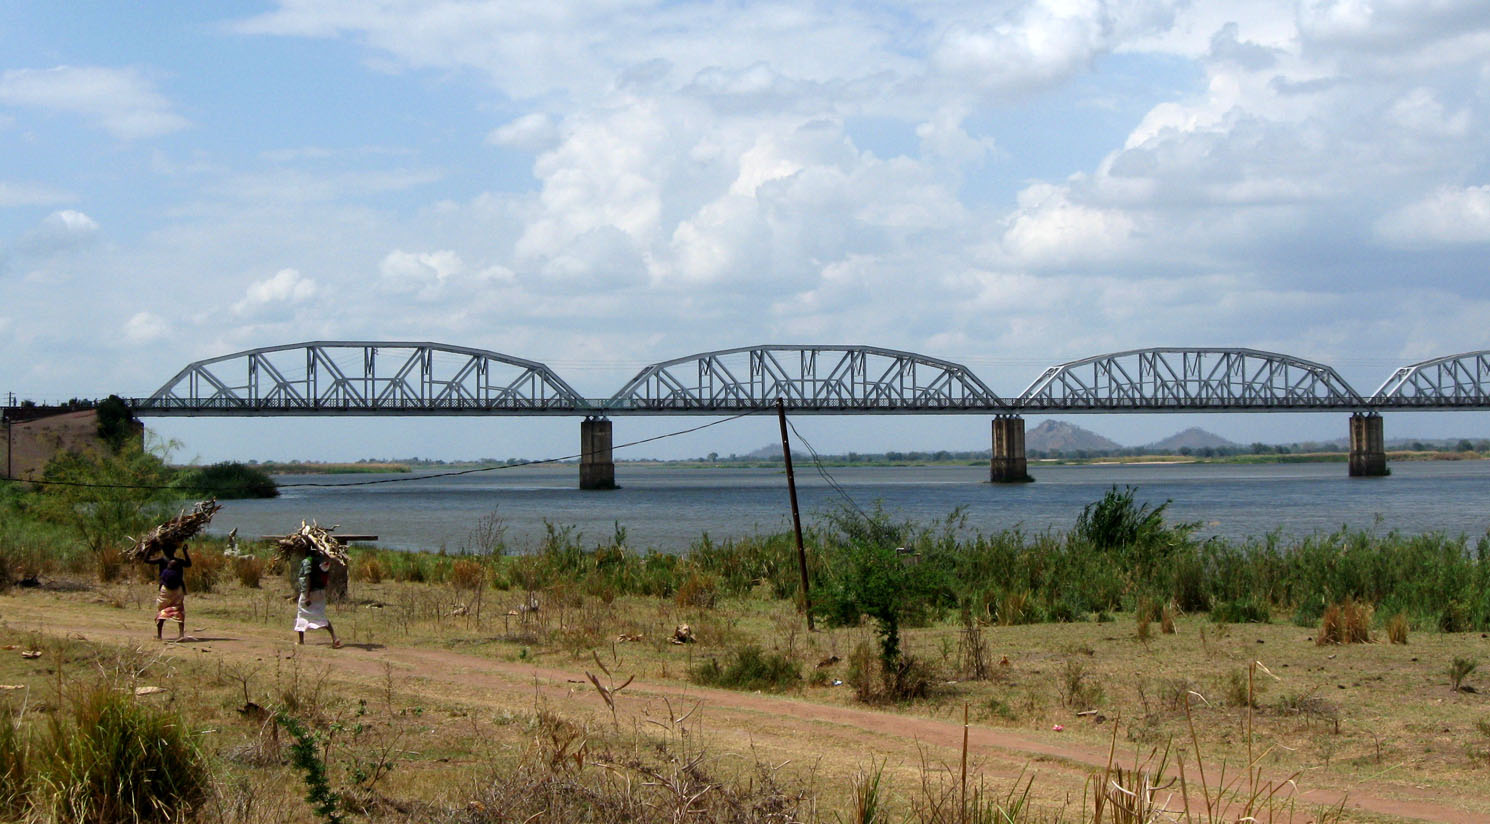 09-064_4-railway_bridge_over_the_zambezi_river__mozambique_1490x824-2.jpg